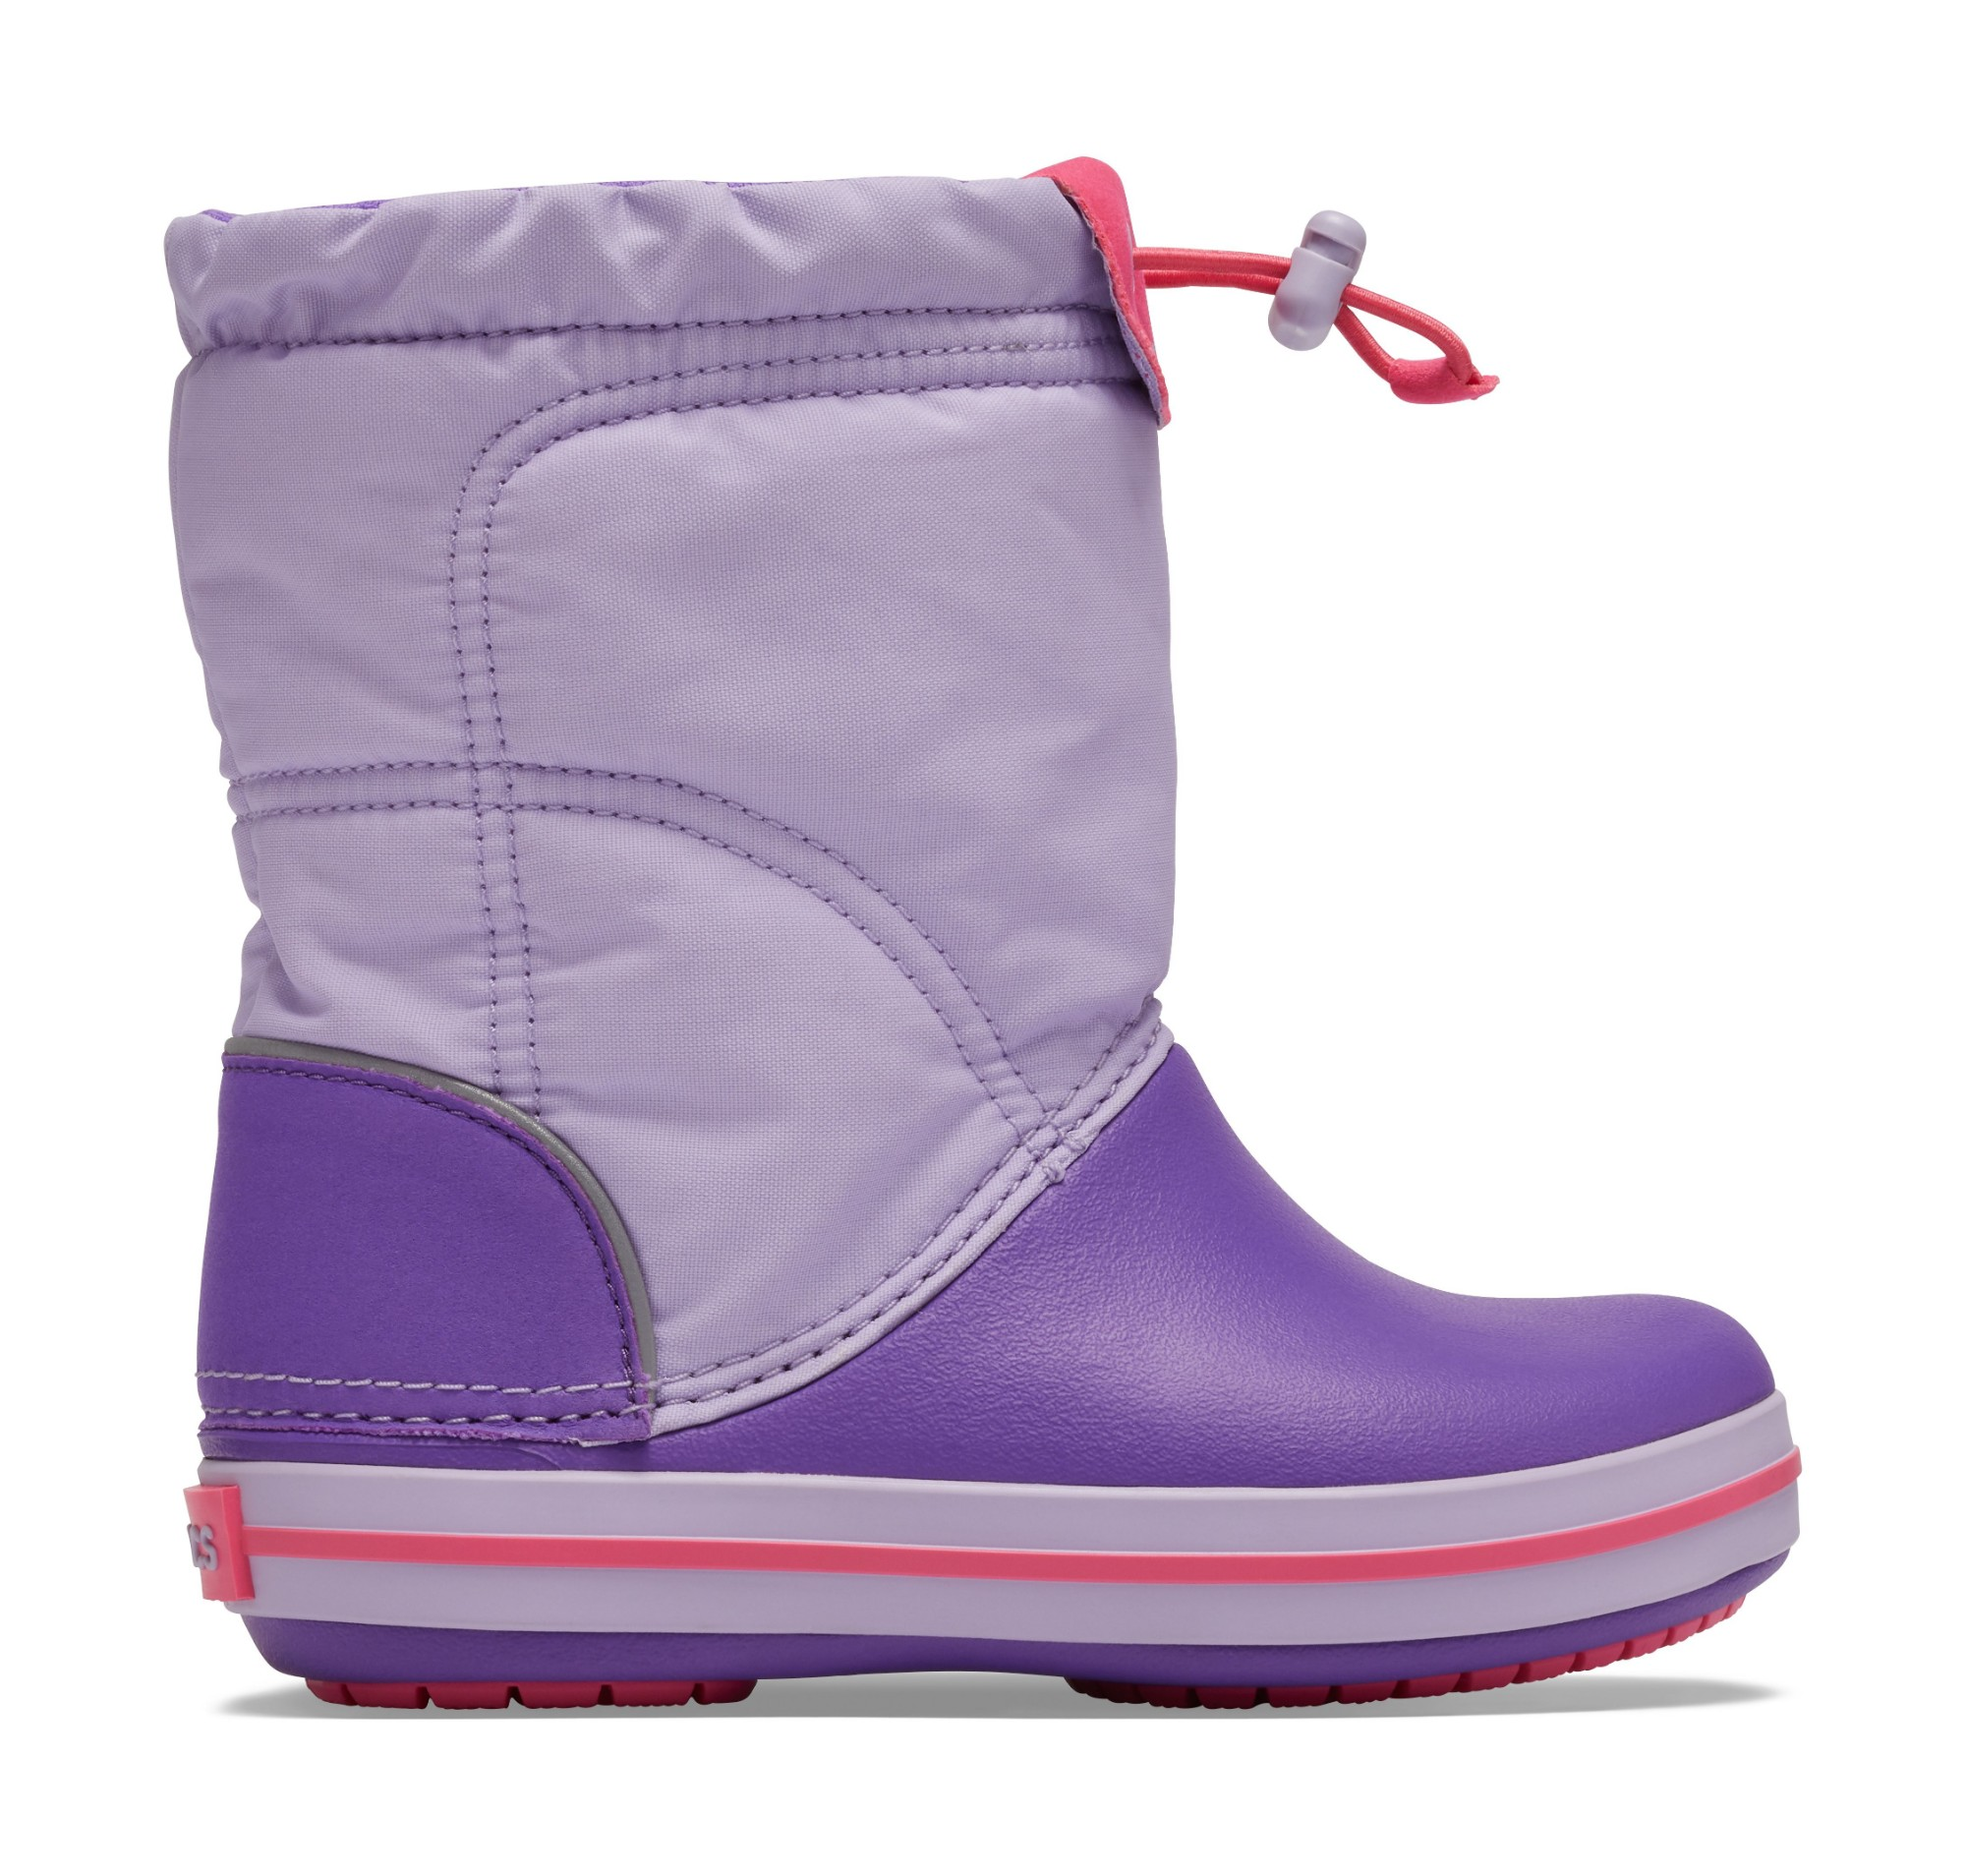 Crocs™ Kids' Crocband Lodgepoint Boot Lavender/Neon Purple 26